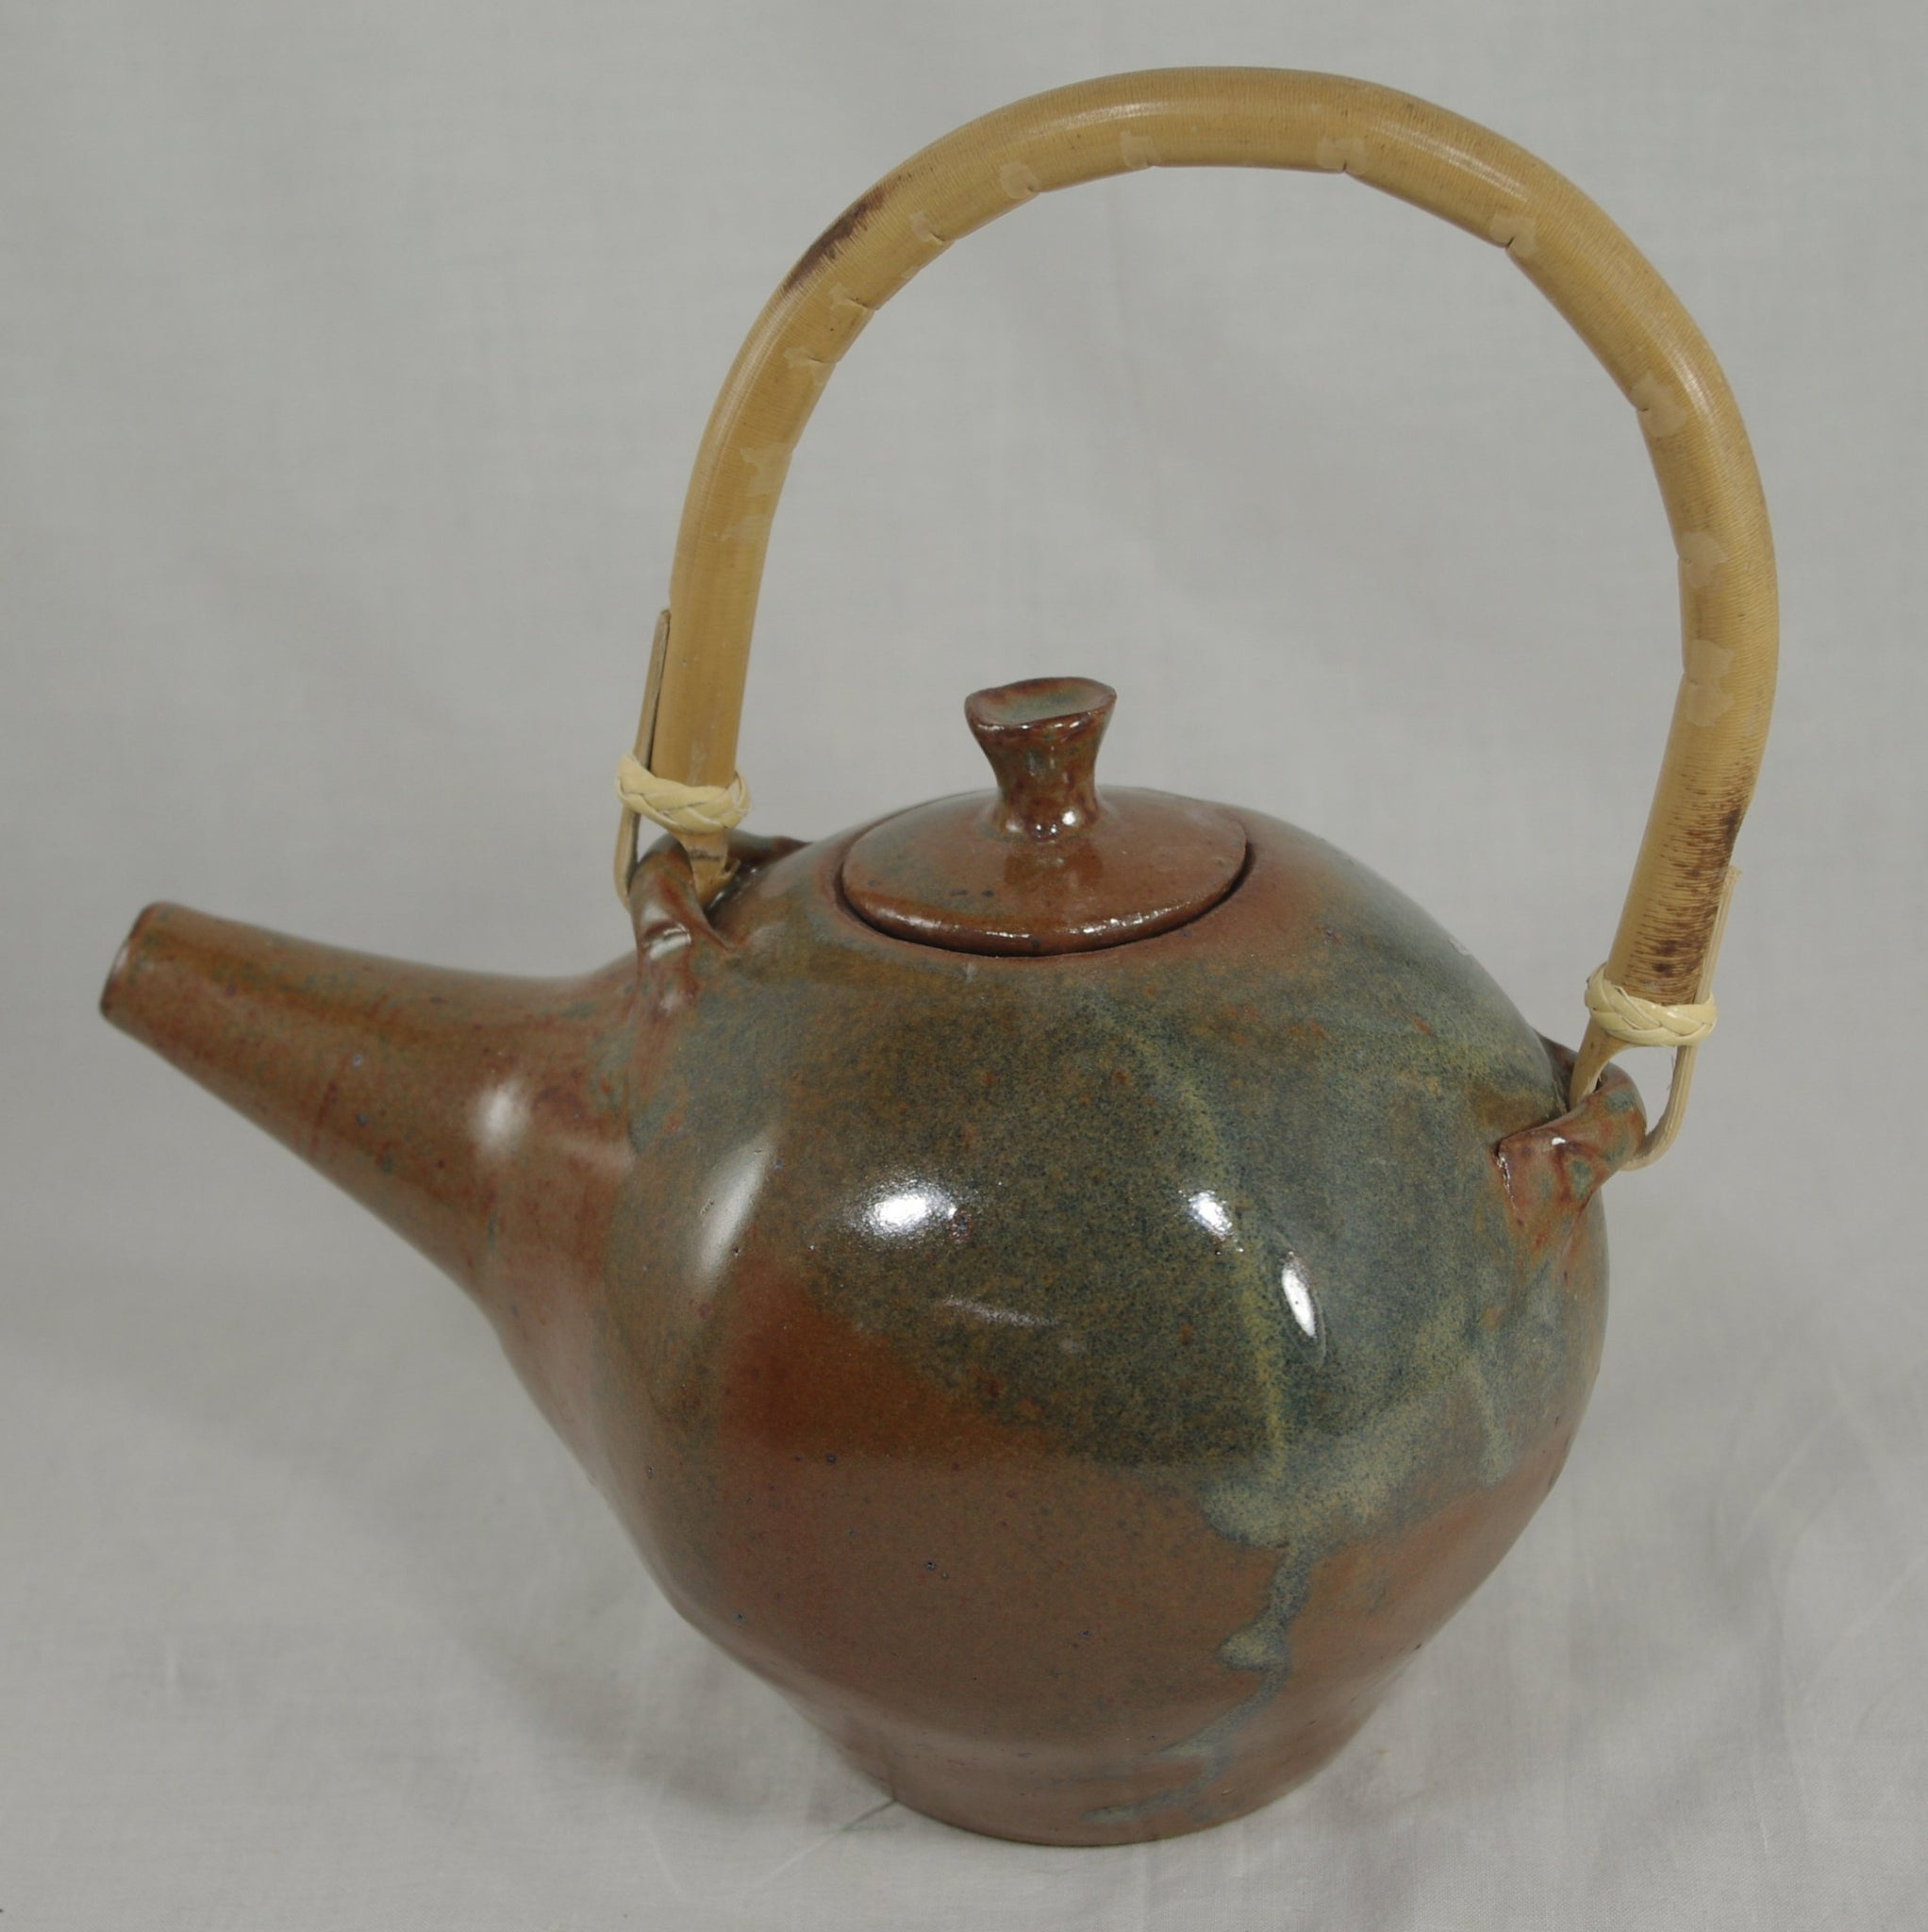 Tea Pot with Bamboo Handle #1 - Skip Bleecker